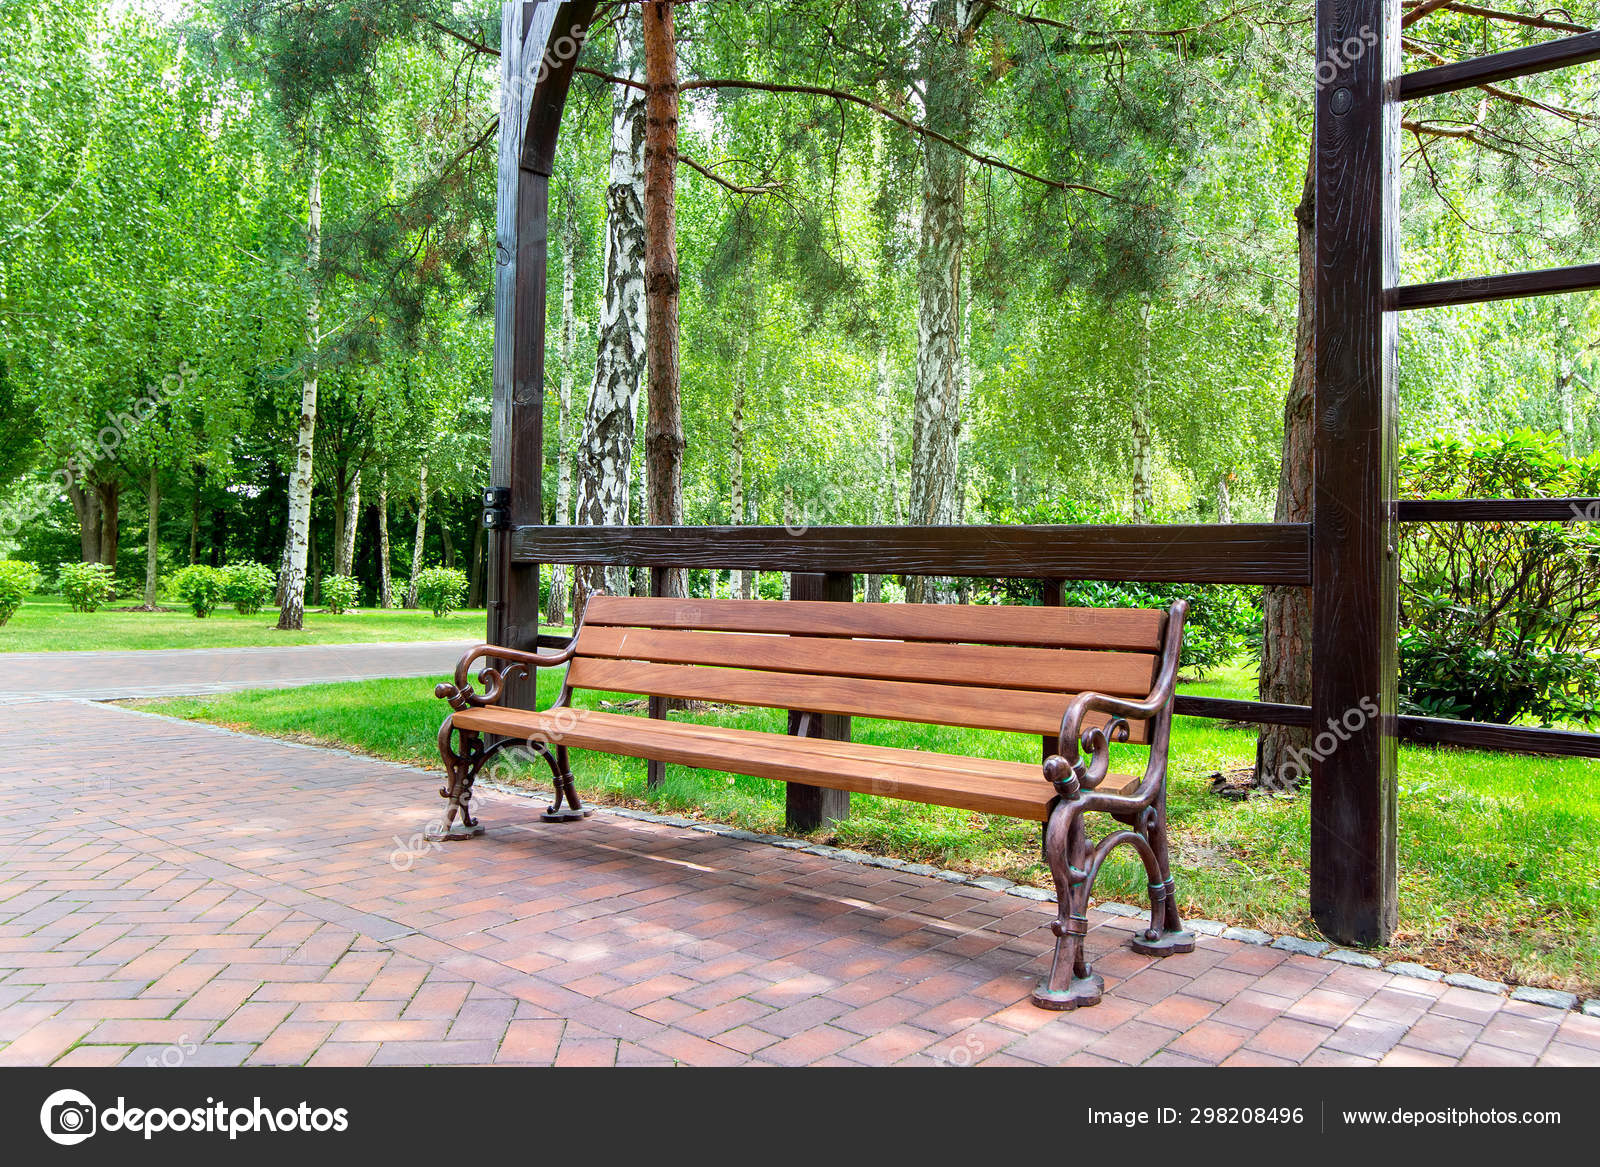 Cool Bench Iron Legs Wooden Seat Board Pergola Arch Garden Green Forskolin Free Trial Chair Design Images Forskolin Free Trialorg